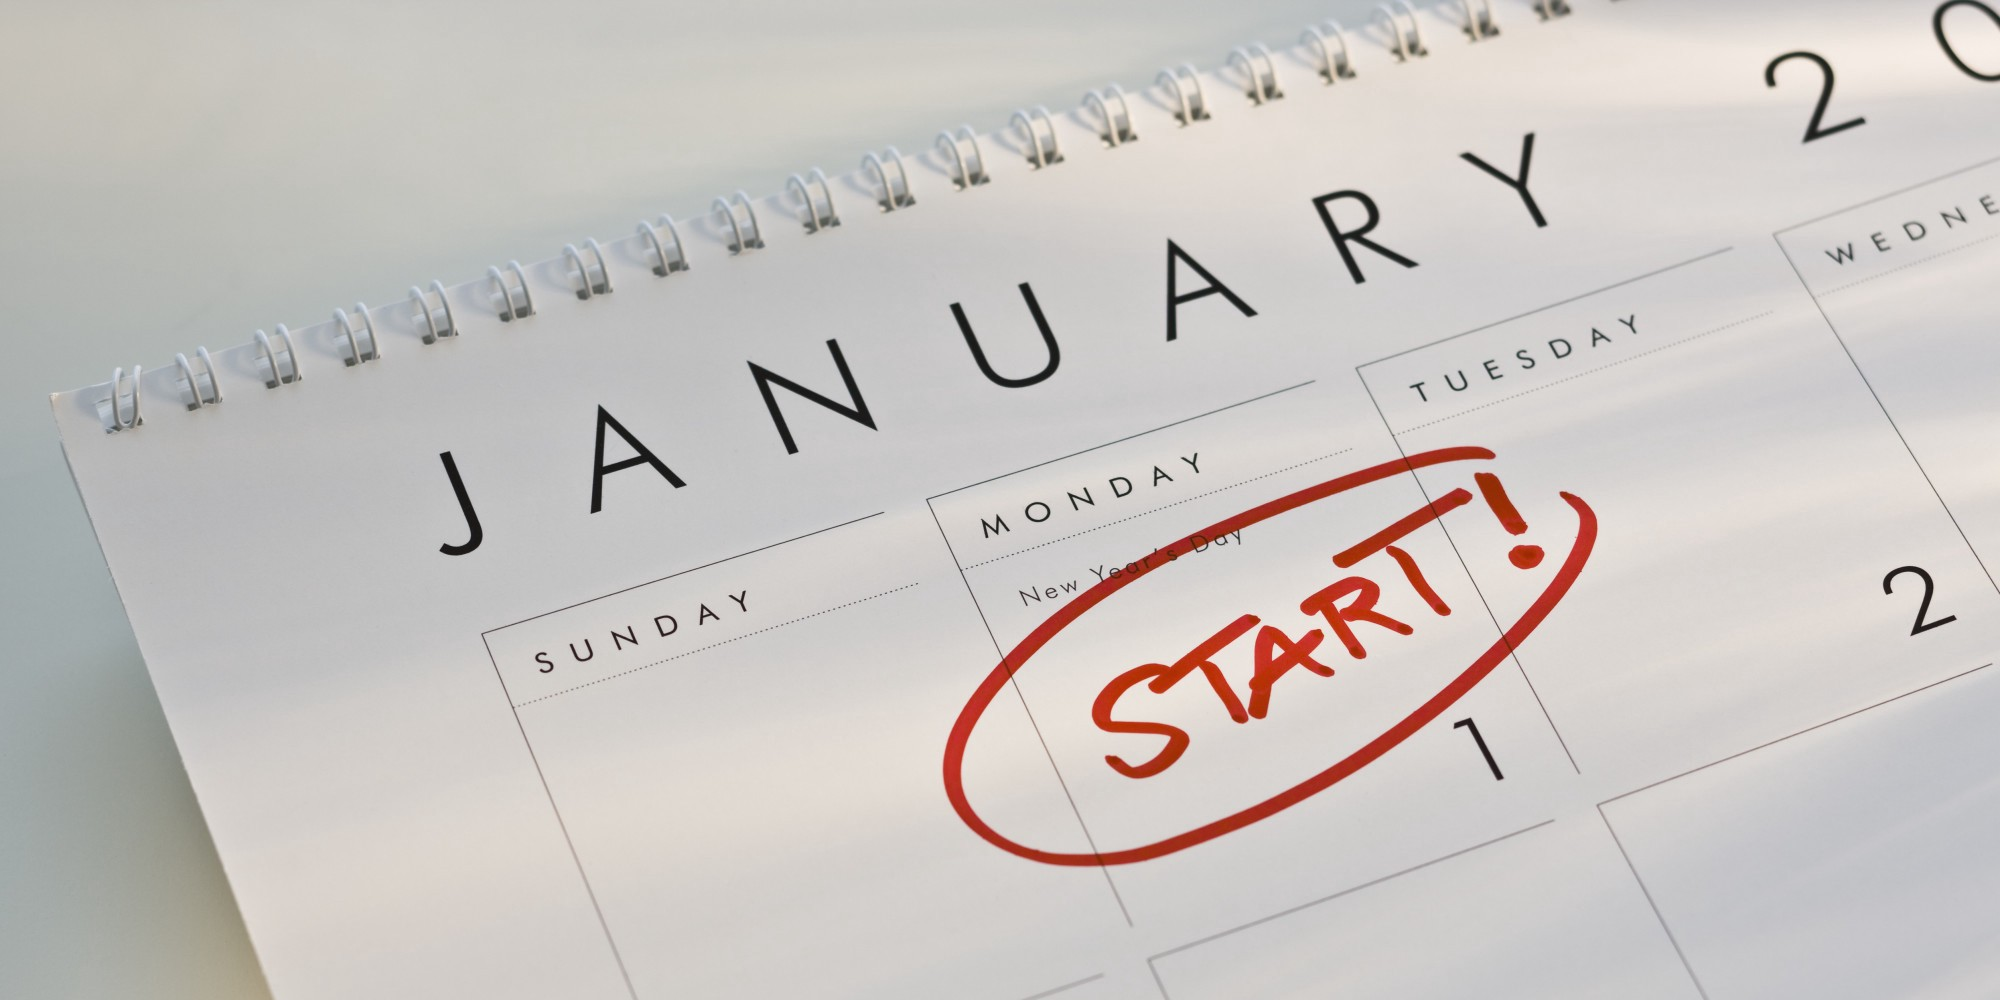 10 New Year's Resolutions That Are Bad for Your Health advise